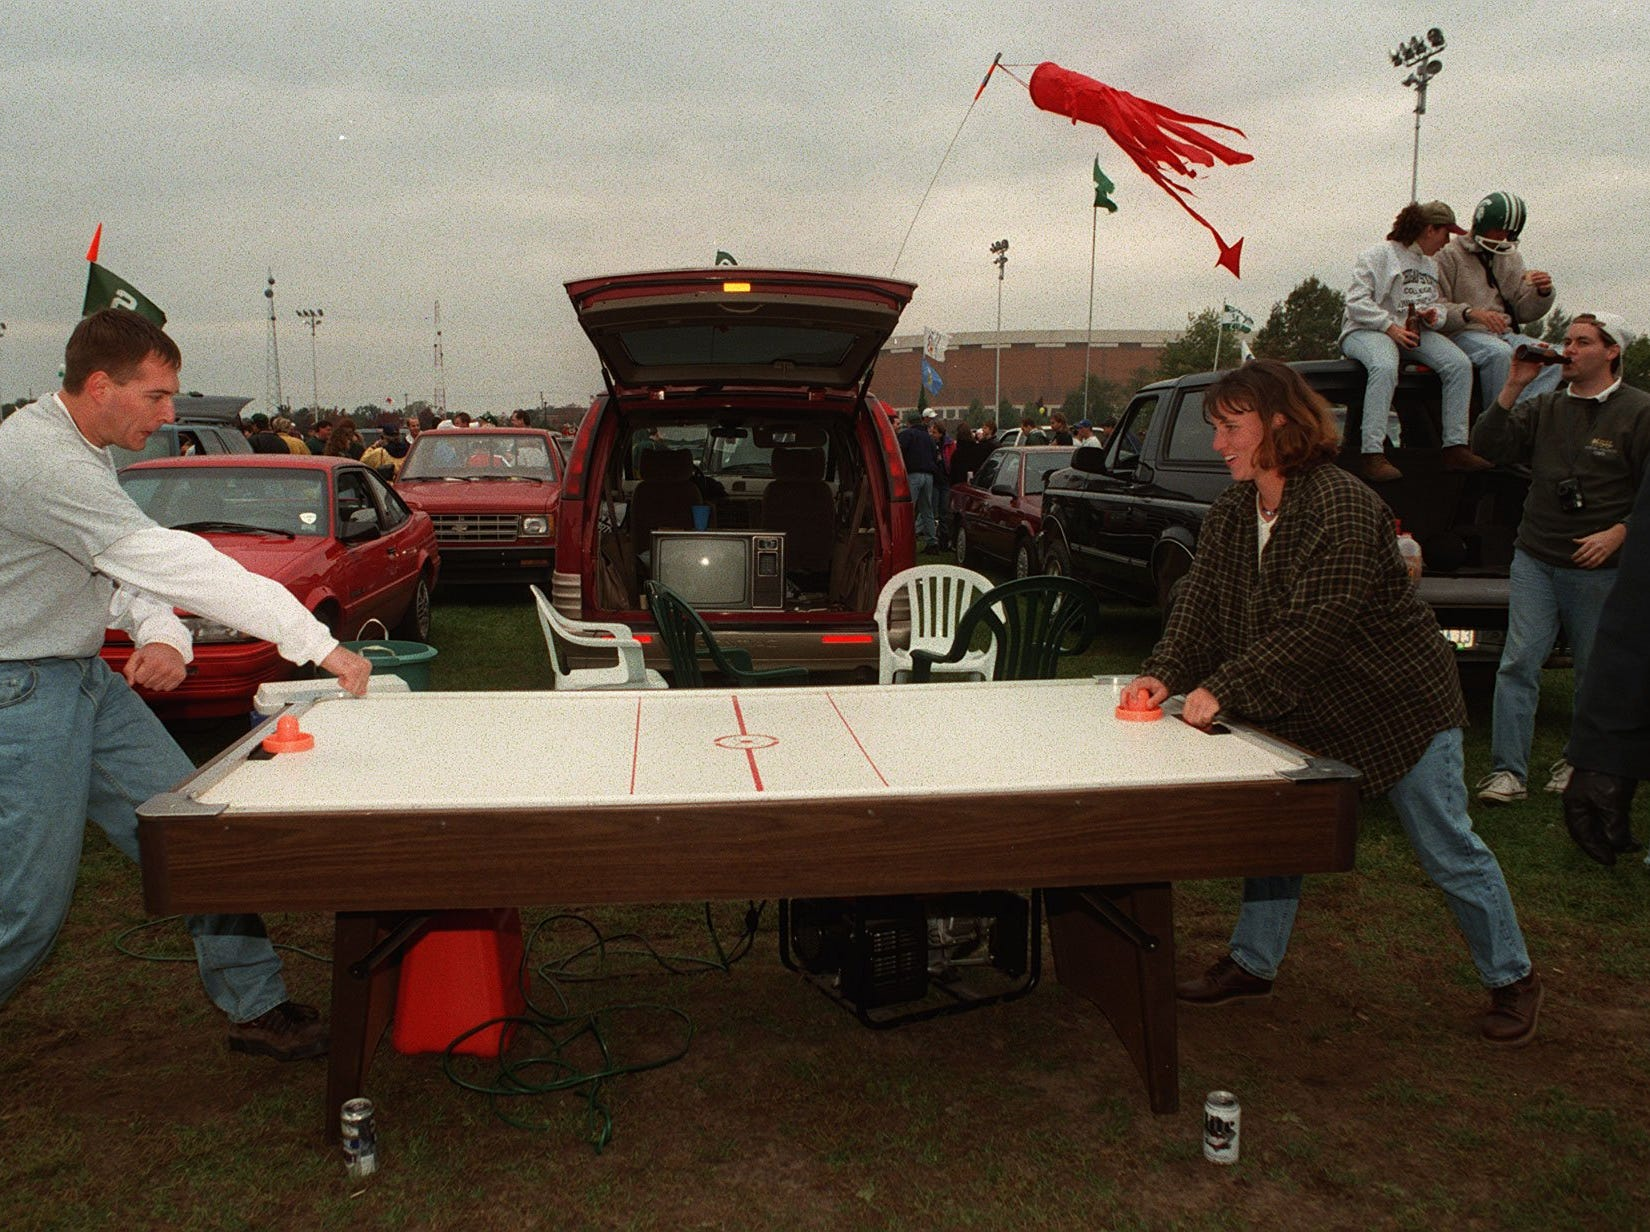 Spartan tailgating throughout the years